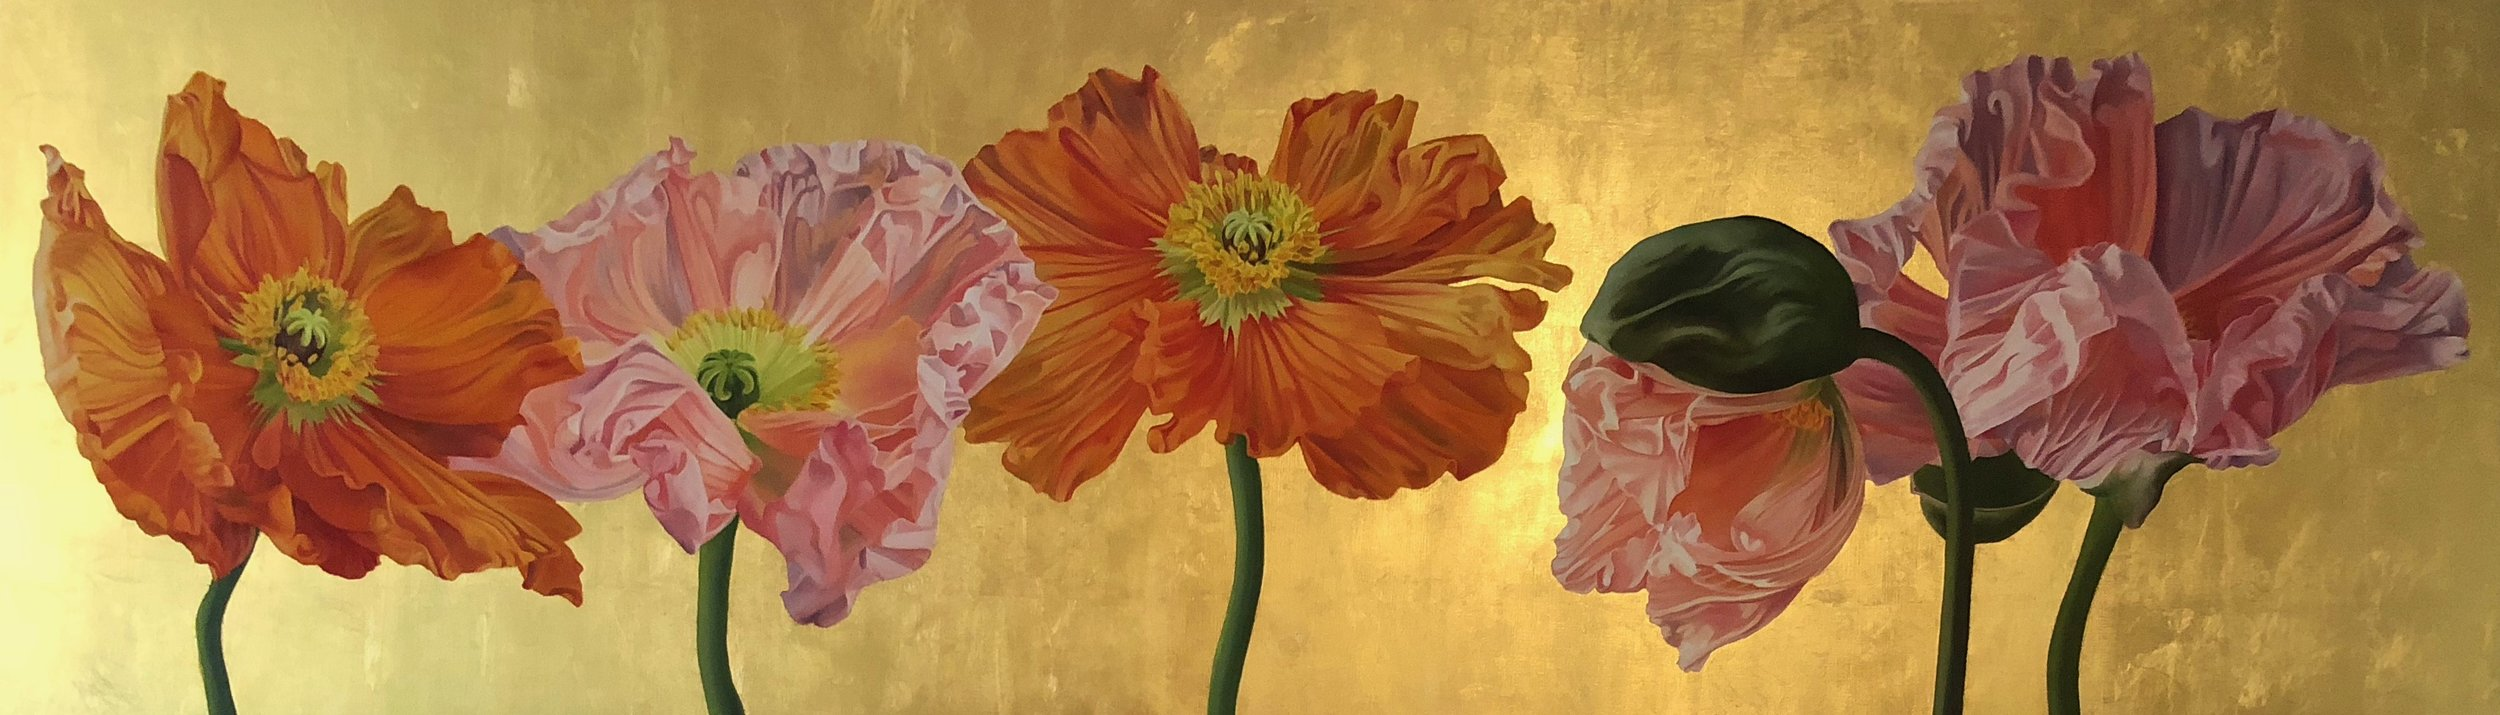 """The Line Up - 18"""" x 60"""" - Oil and Gold Leaf on Panel"""